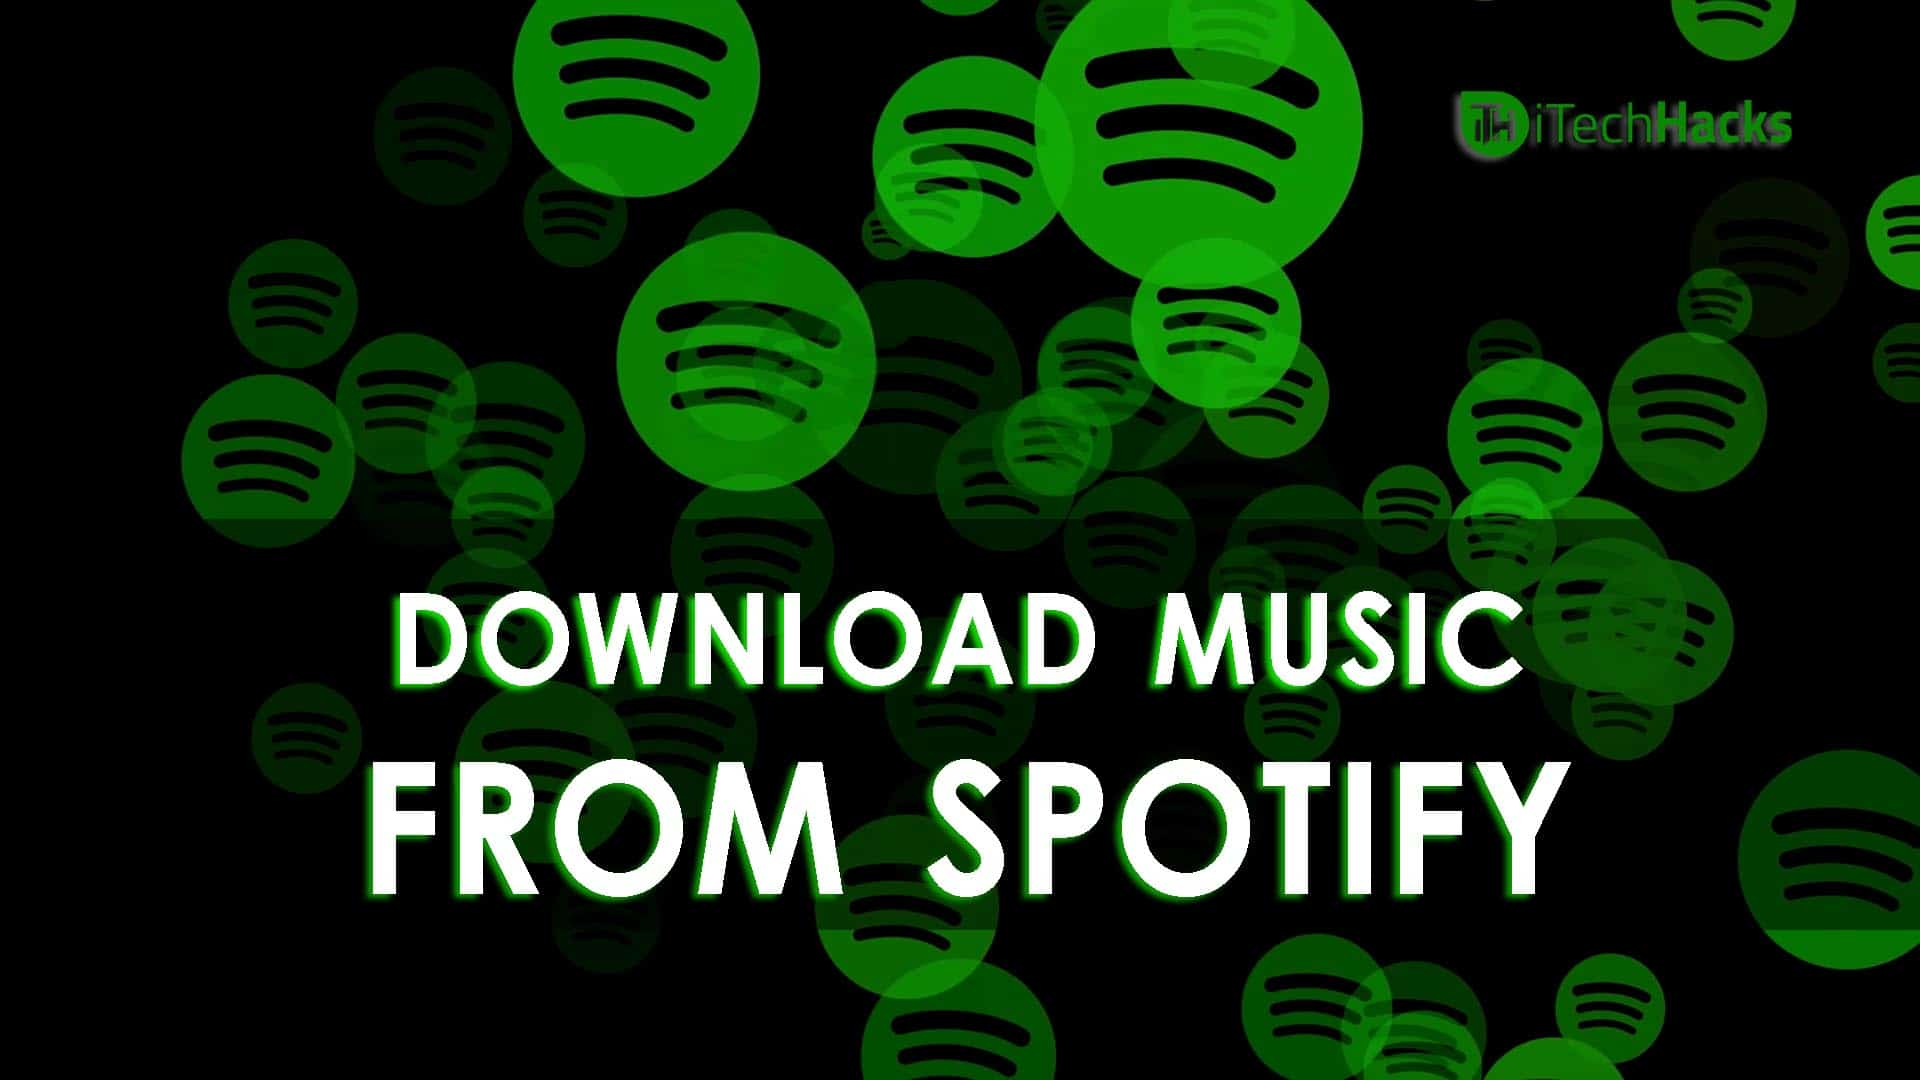 download from spotify